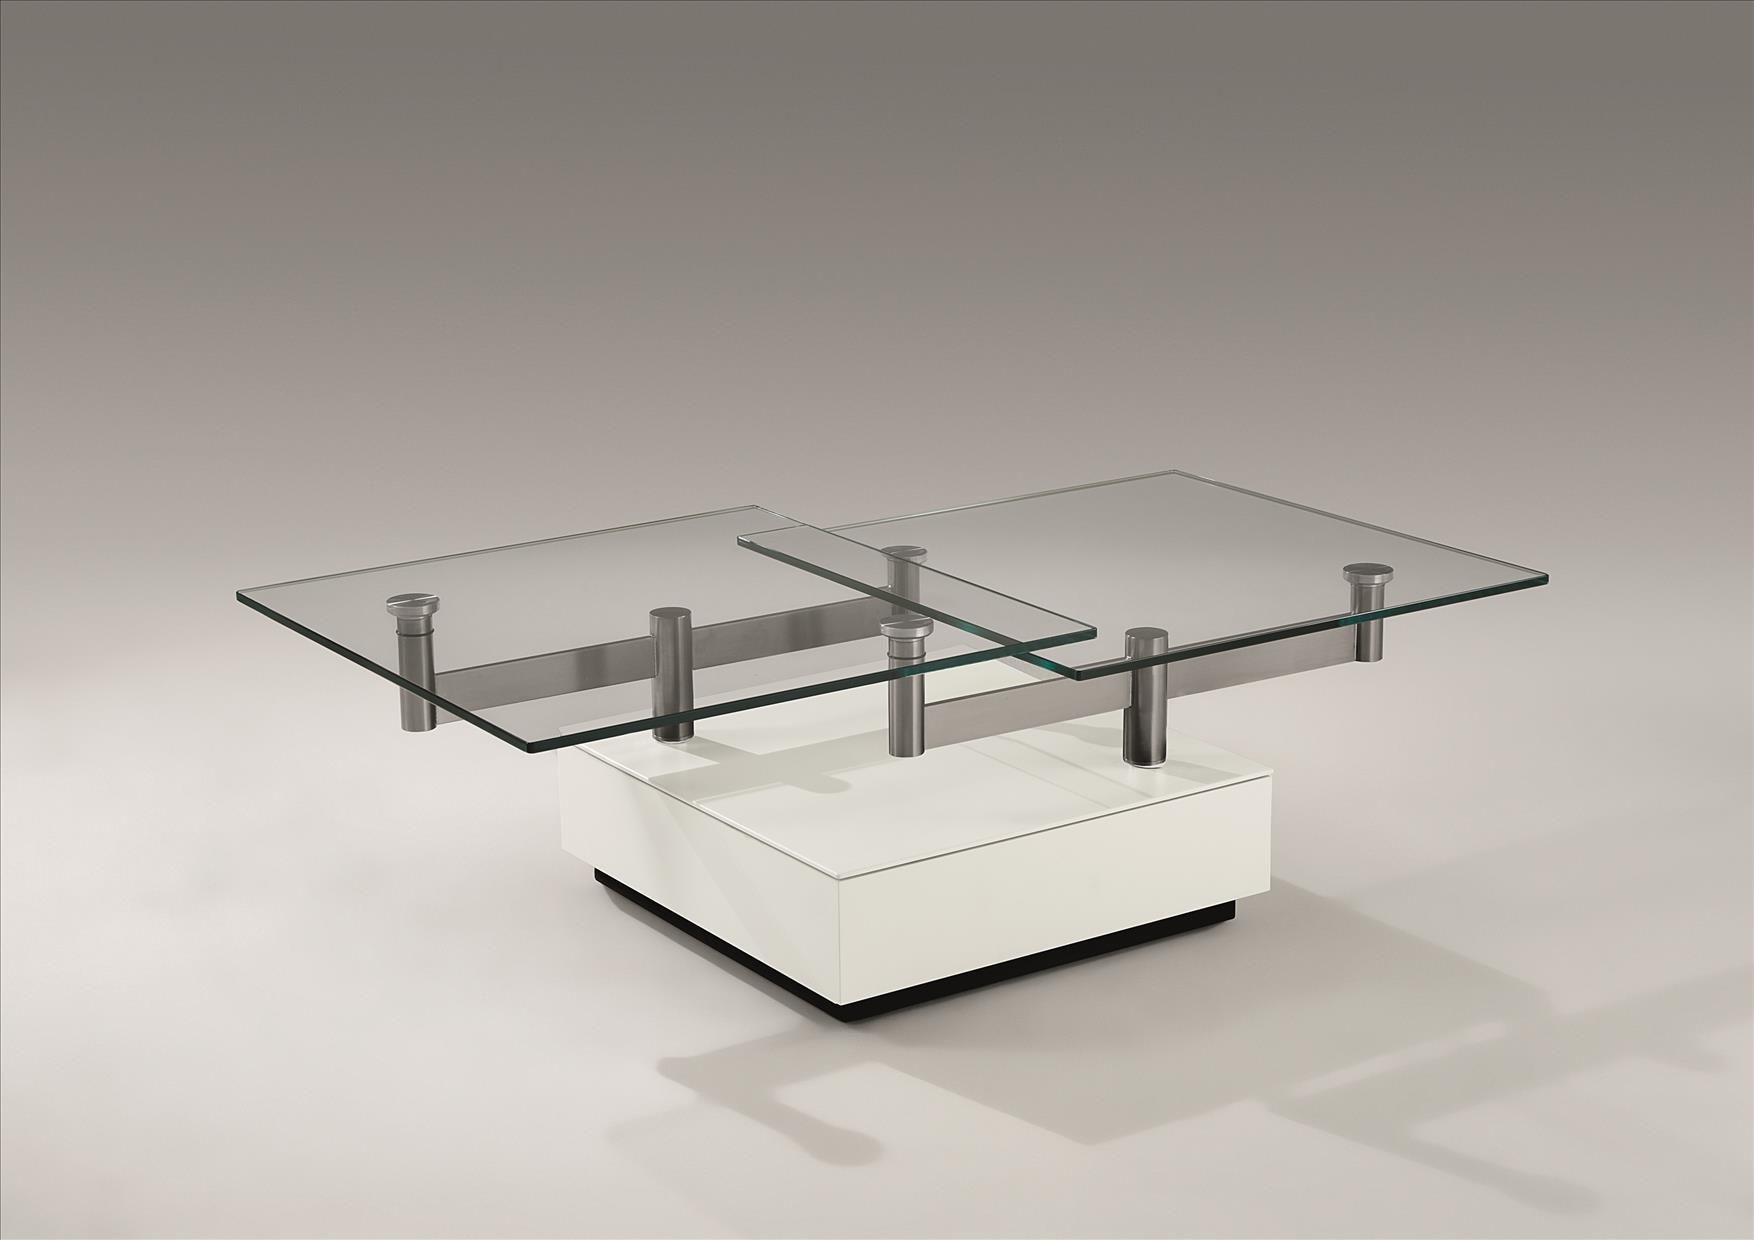 4084 Motion CoffeeTable by Venjakob available at discounted price